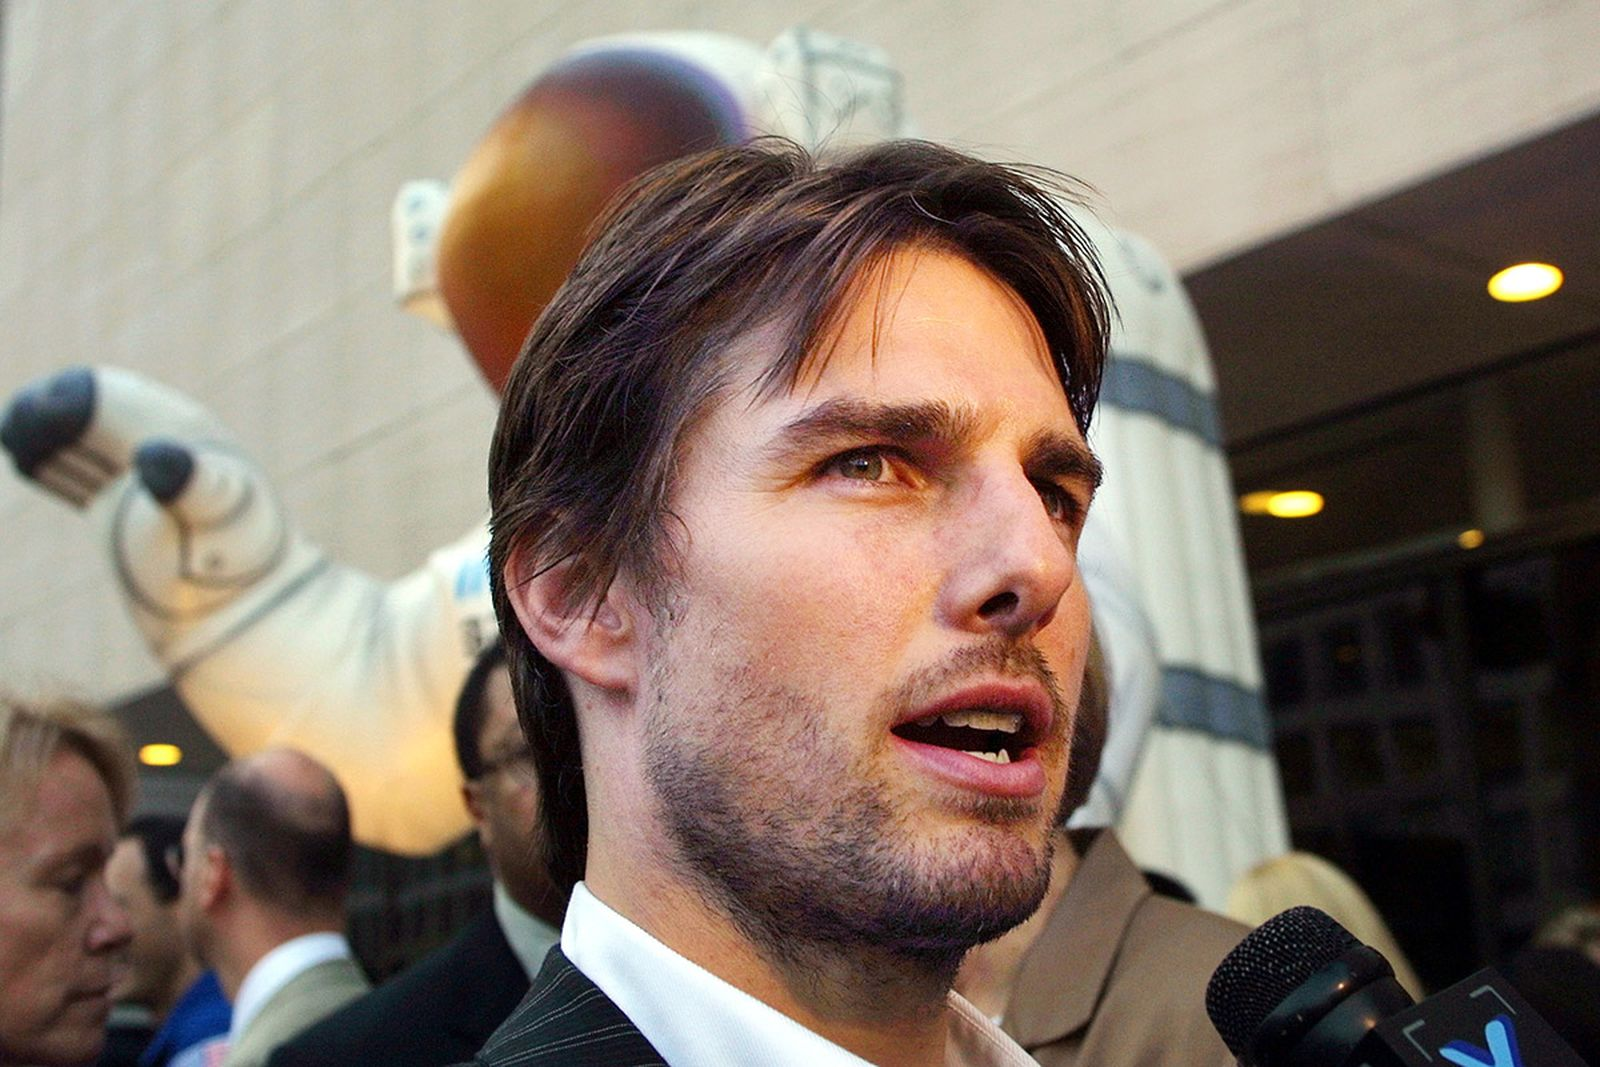 Tom Cruise at Space Museum